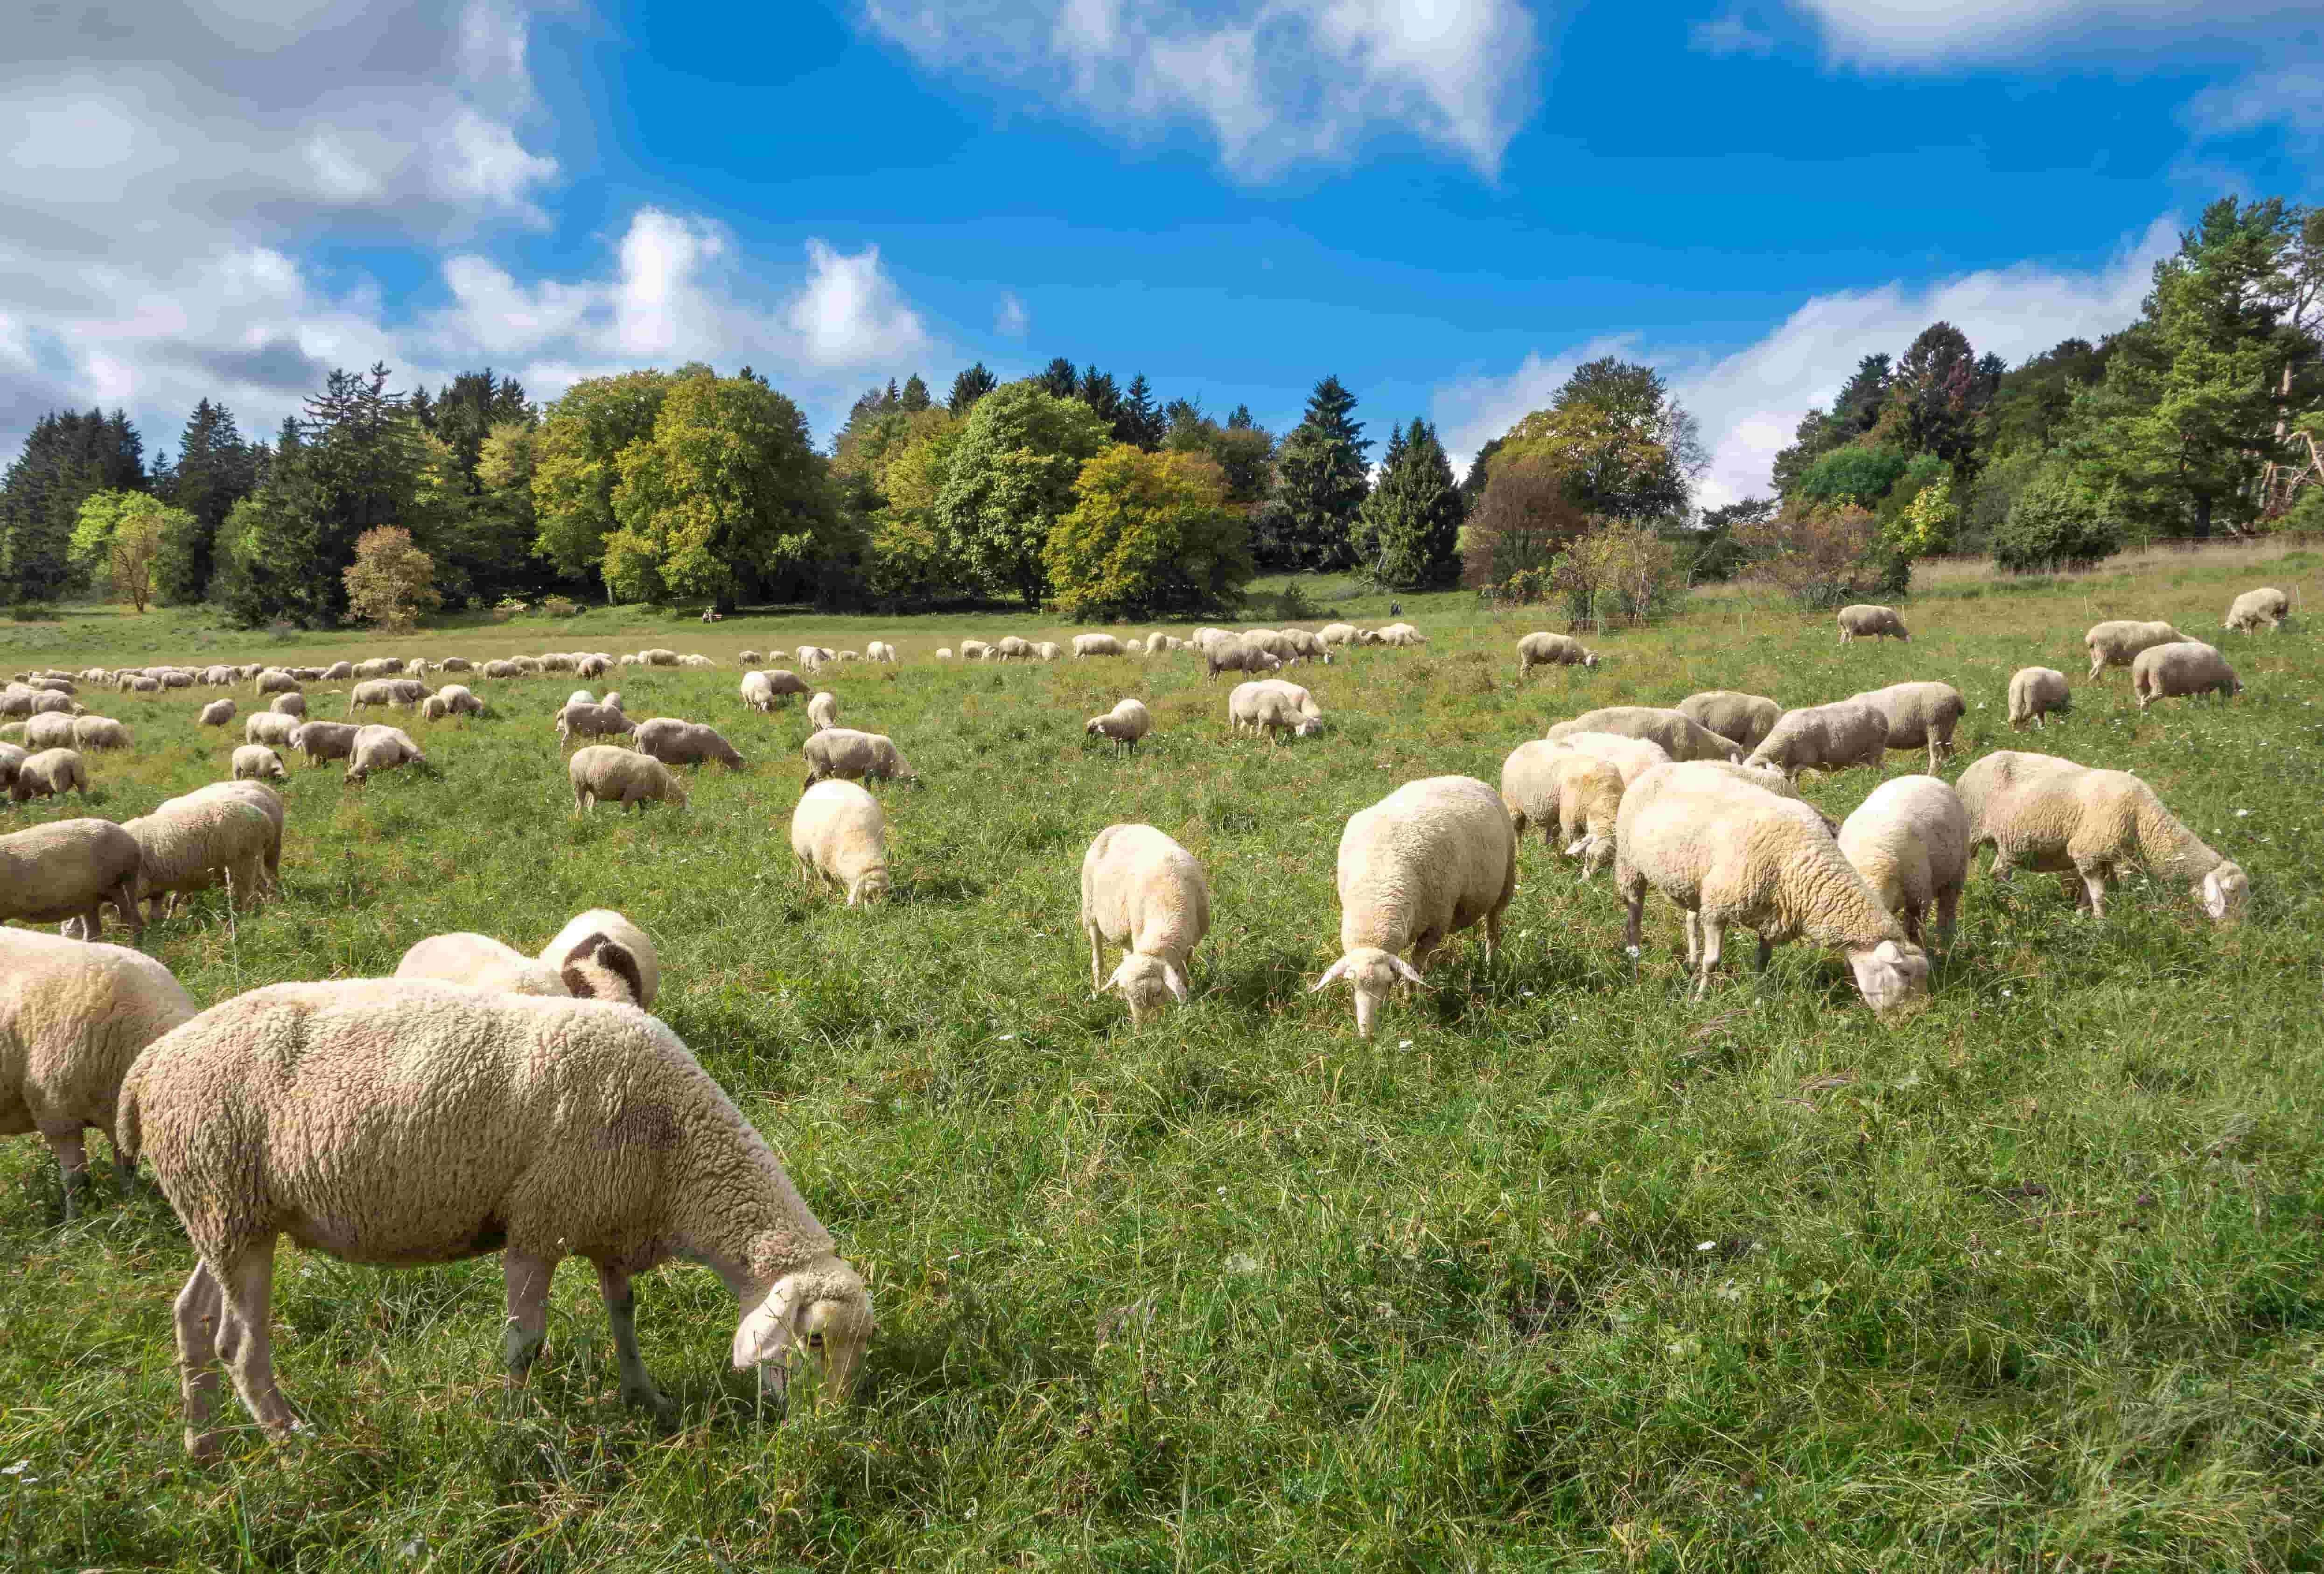 Sheep eating grass, clover and forbs